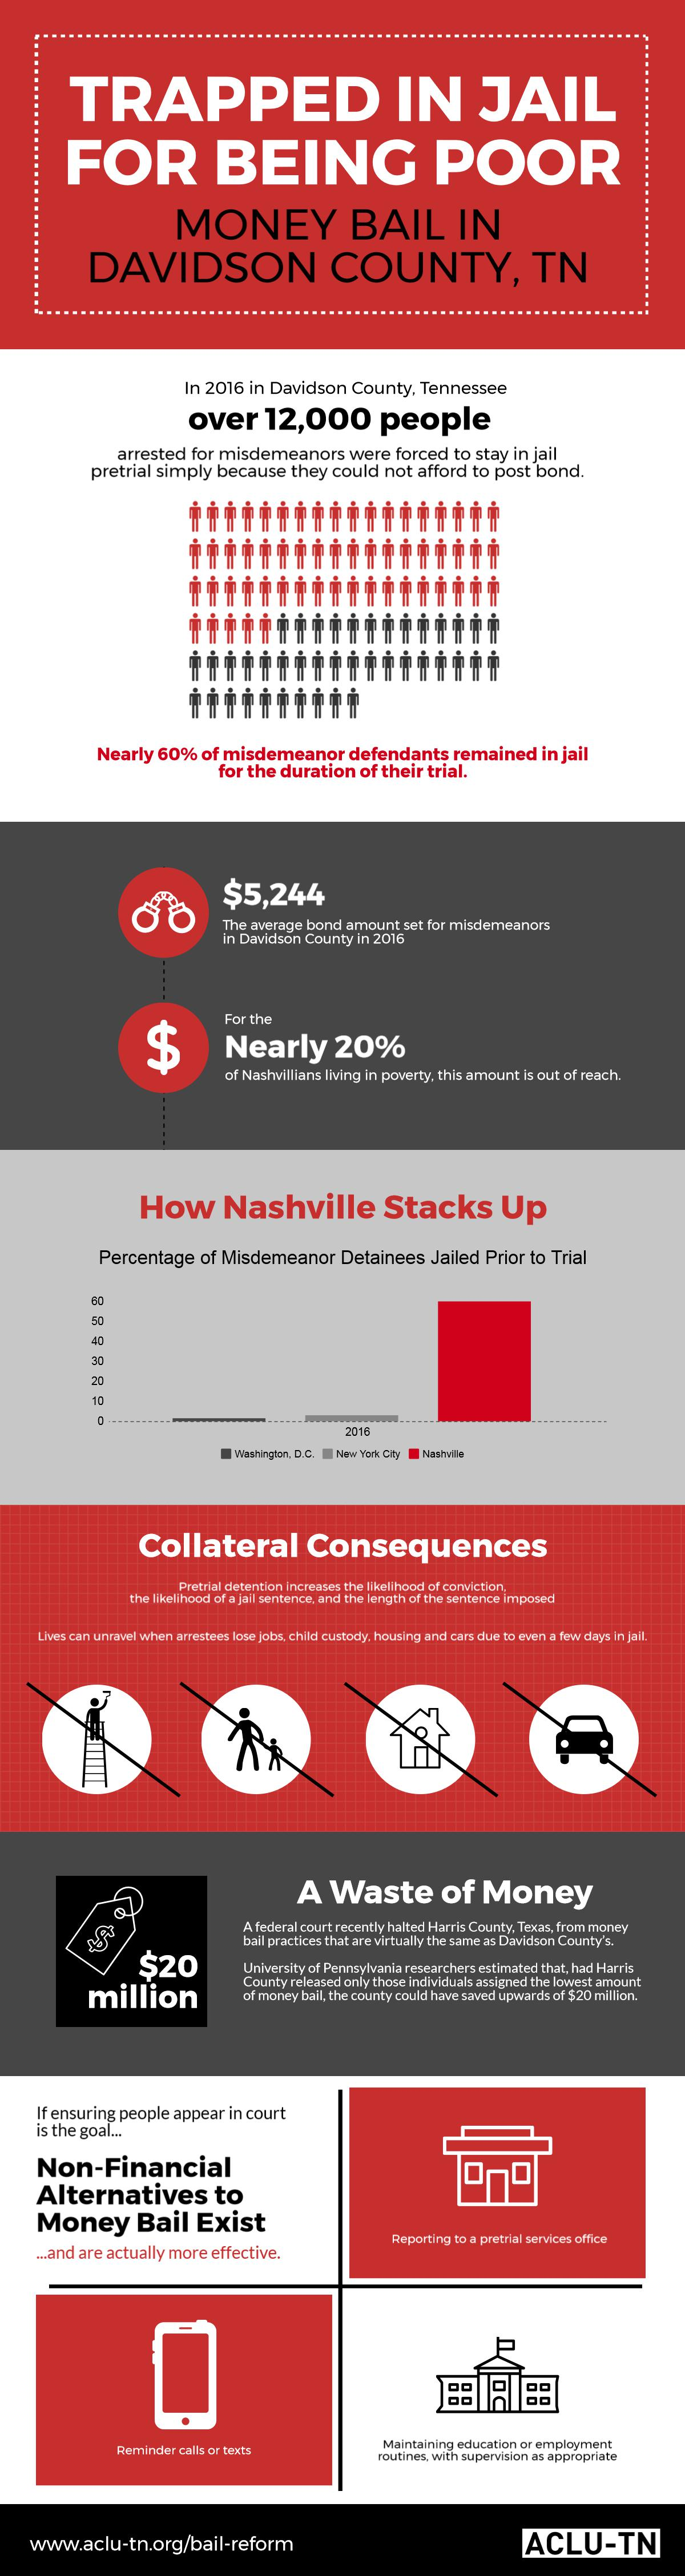 Infographic with stats on money bail in Davidson County, TN